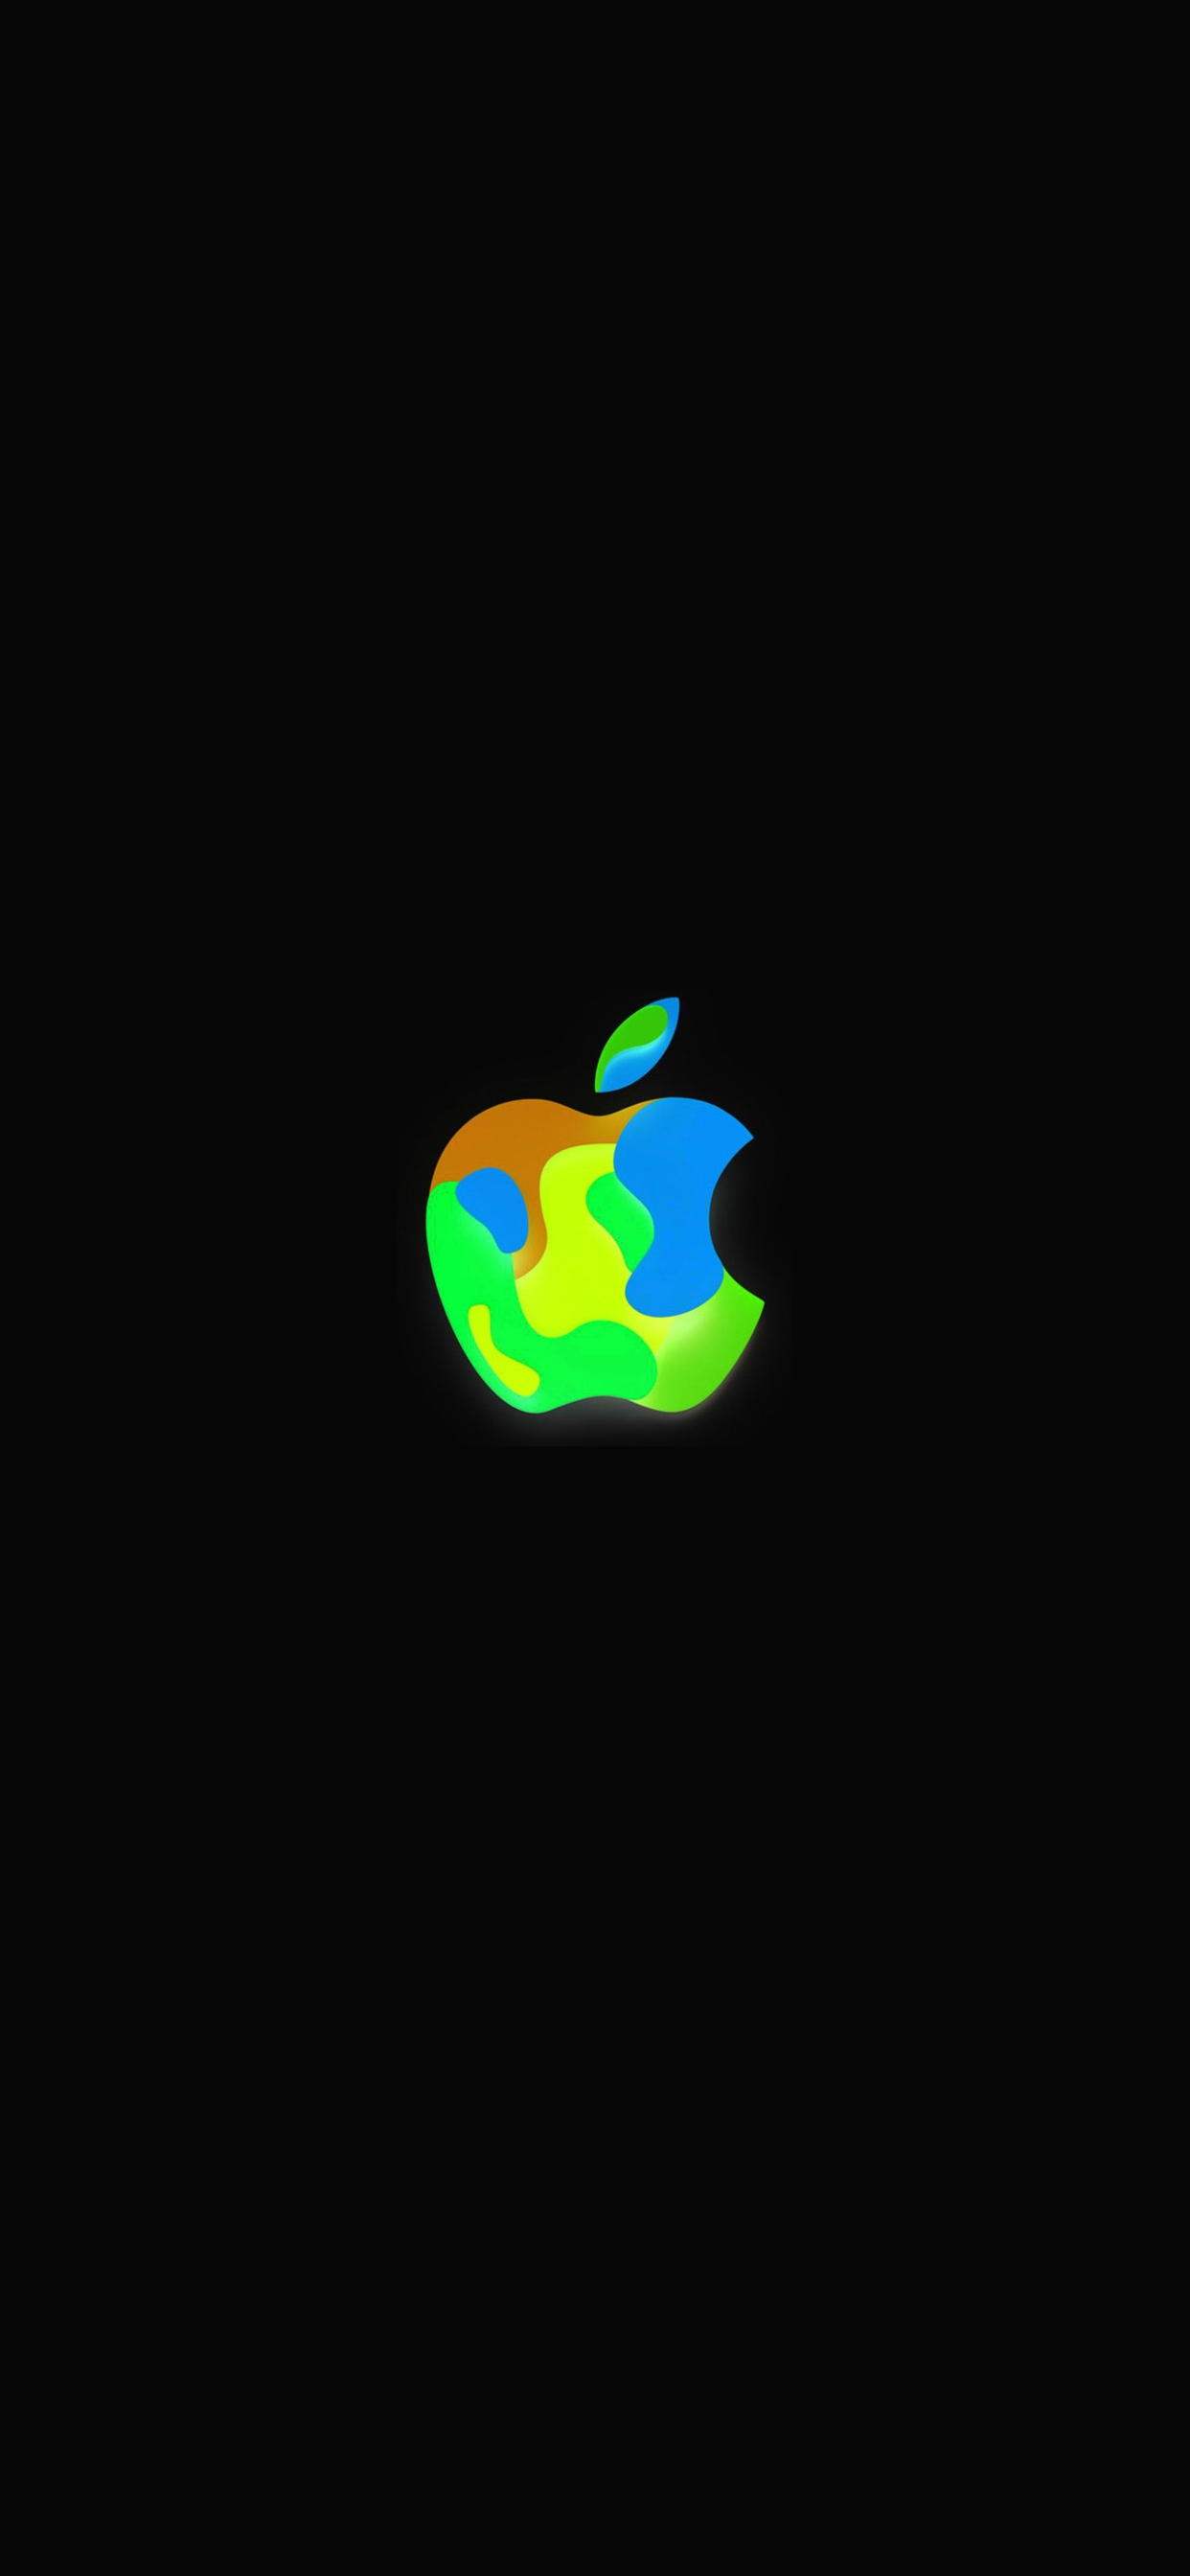 iPhone wallpaper apple logo 14 Apple logo